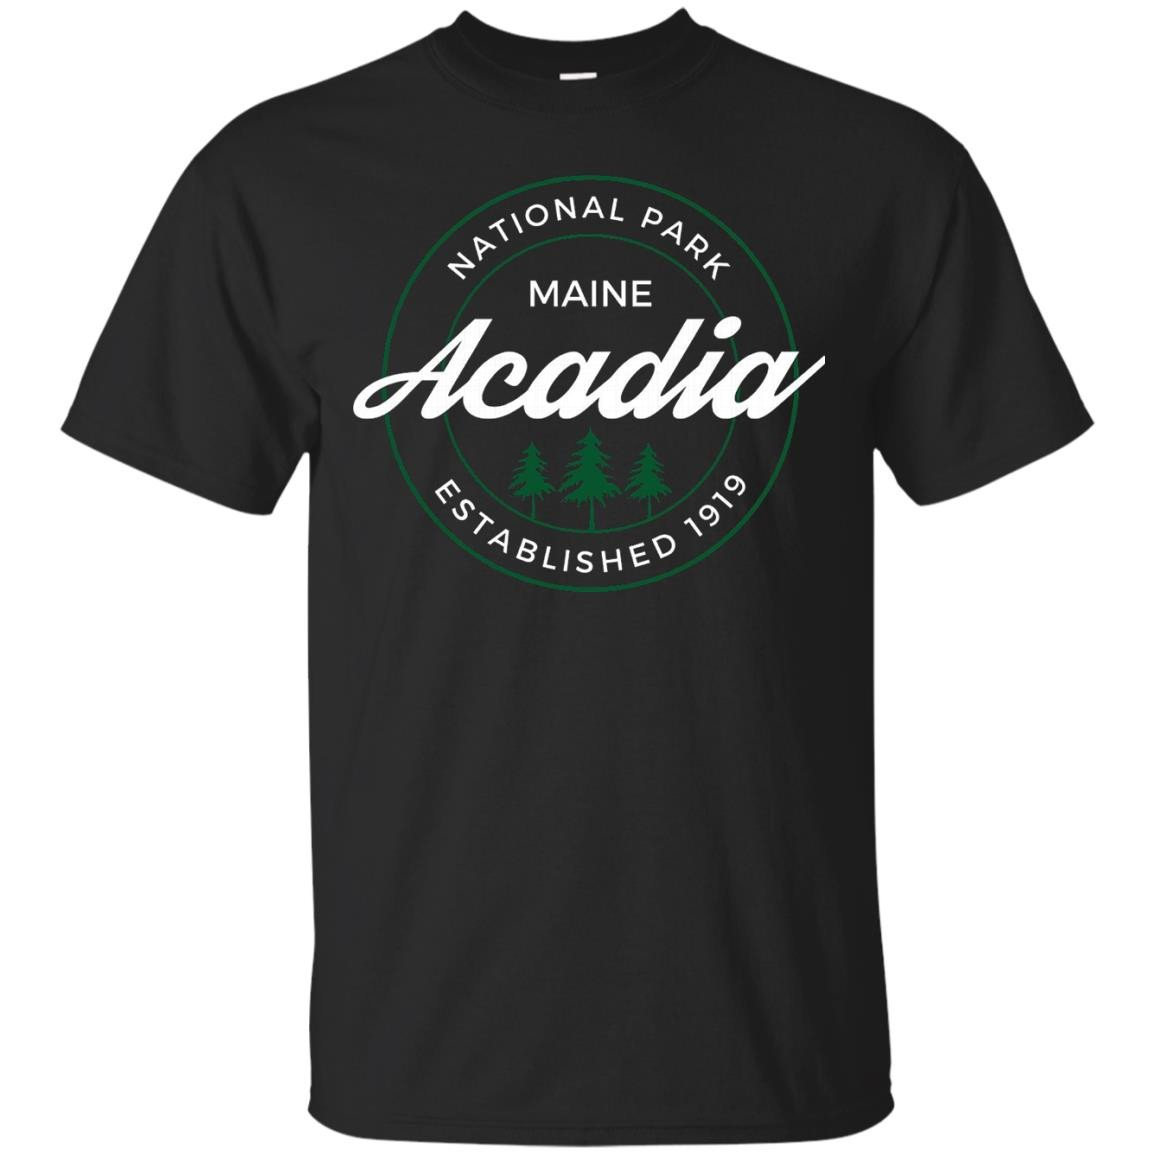 Acadia National Park T Shirt Maine - T-Shirt